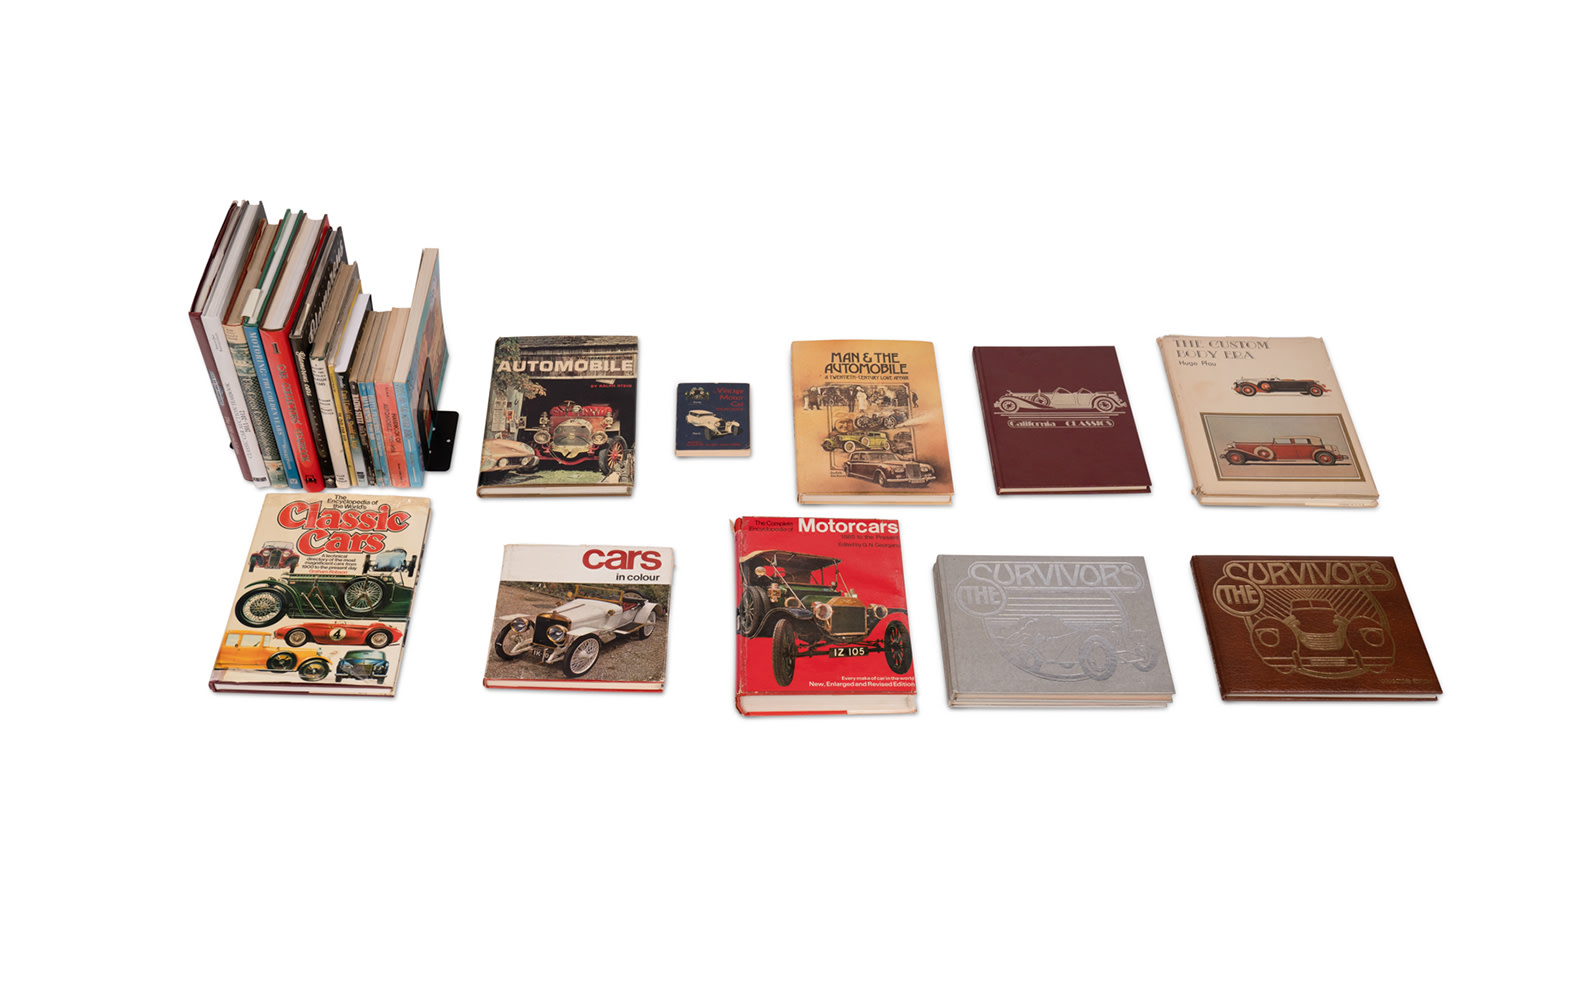 Assorted Books on Classic Automobiles